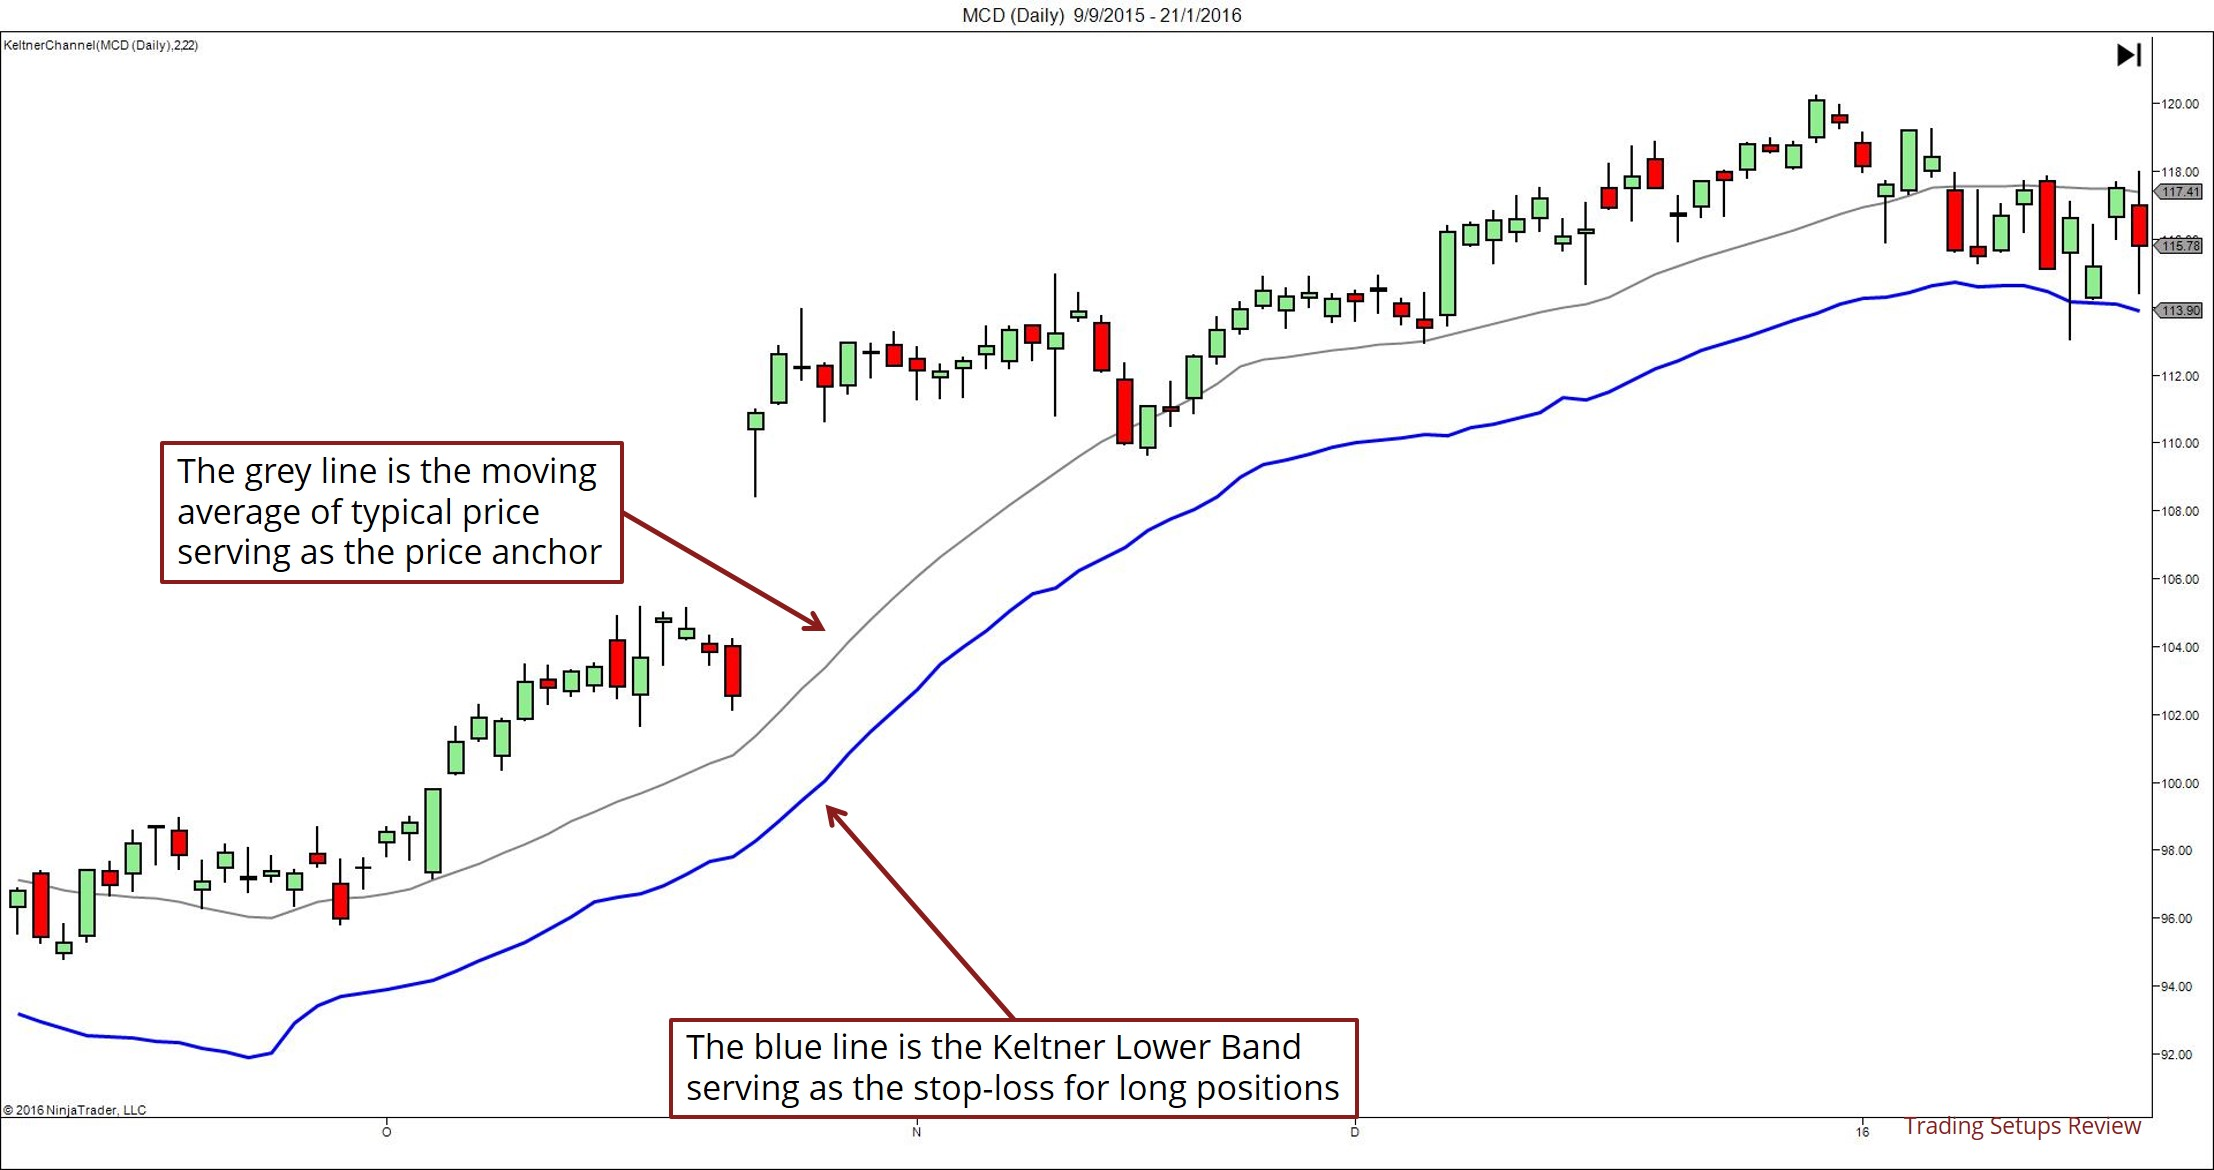 Keltner Bands as Volatility Stop-Loss